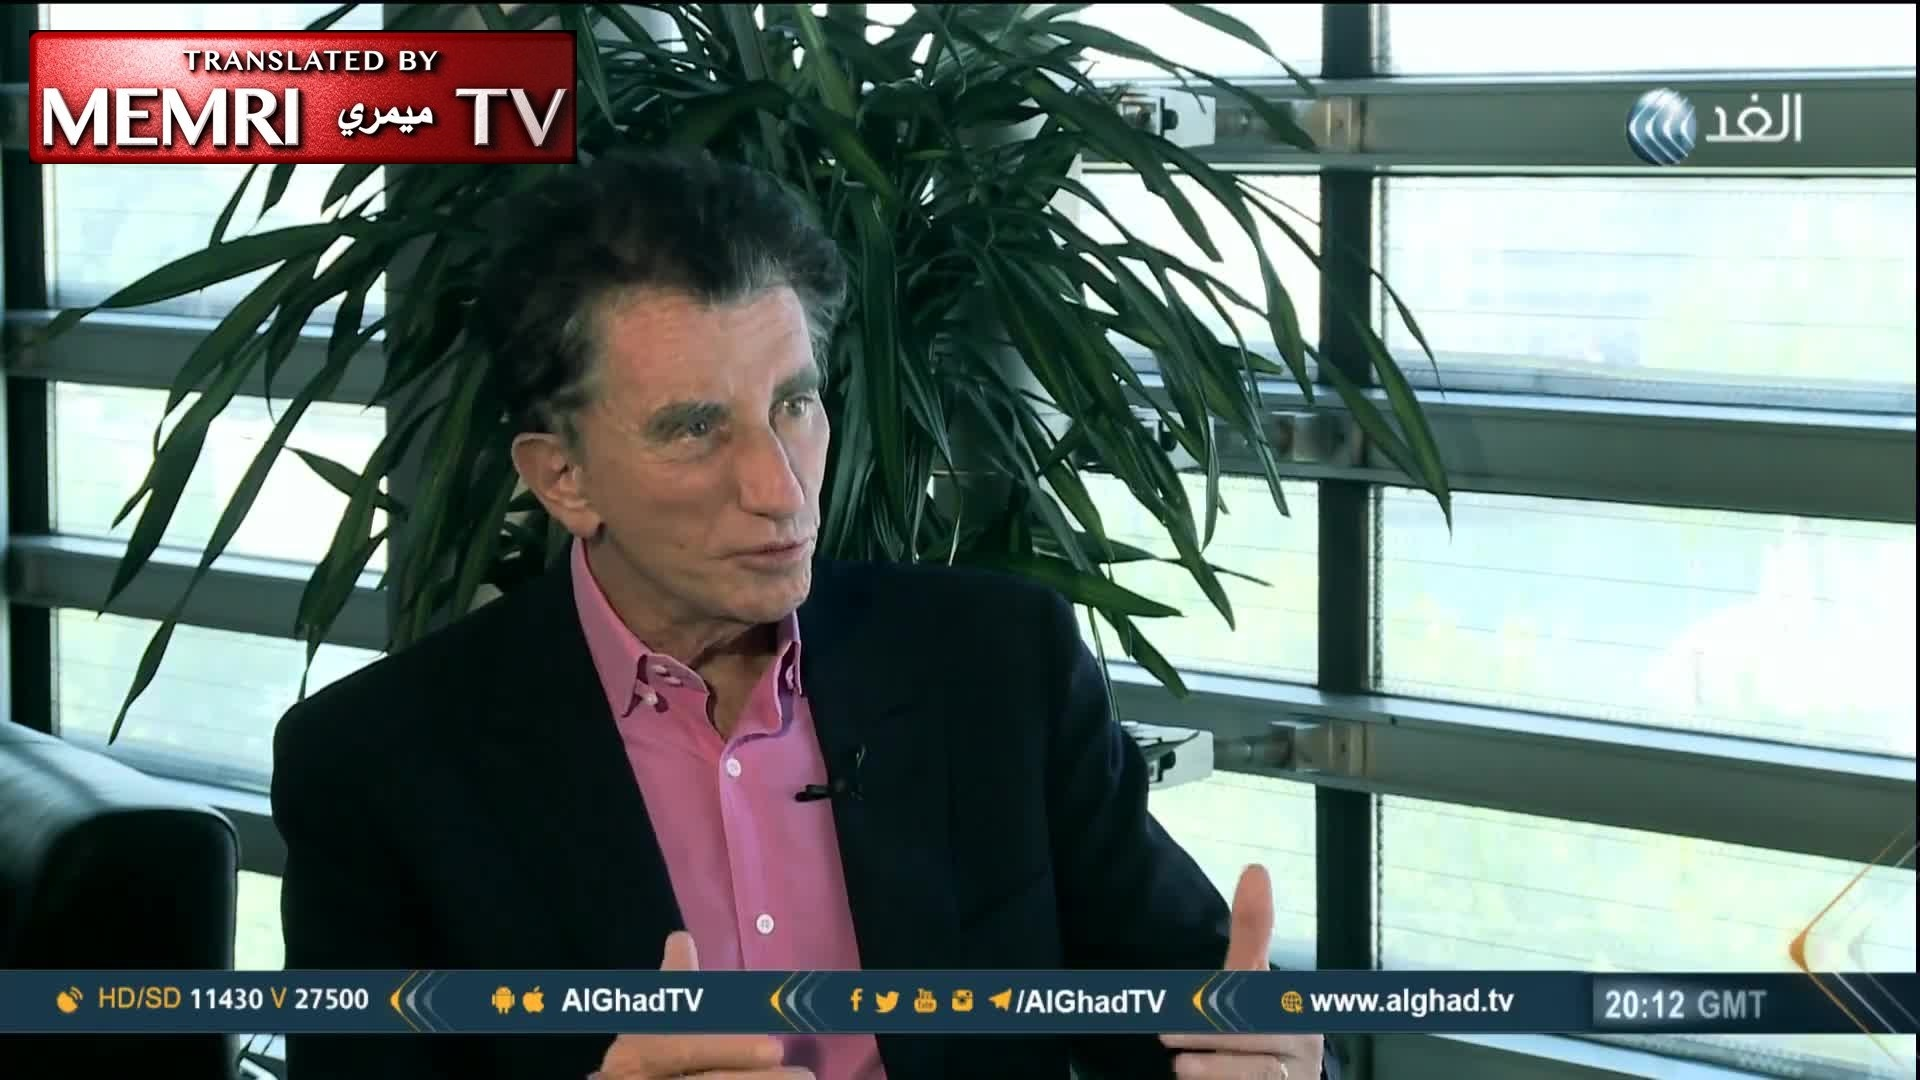 Former French Education Minister Jack Lang: G.W. Bush Perpetrated Crimes against Humanity; Trump's Insanity May Subside with Time